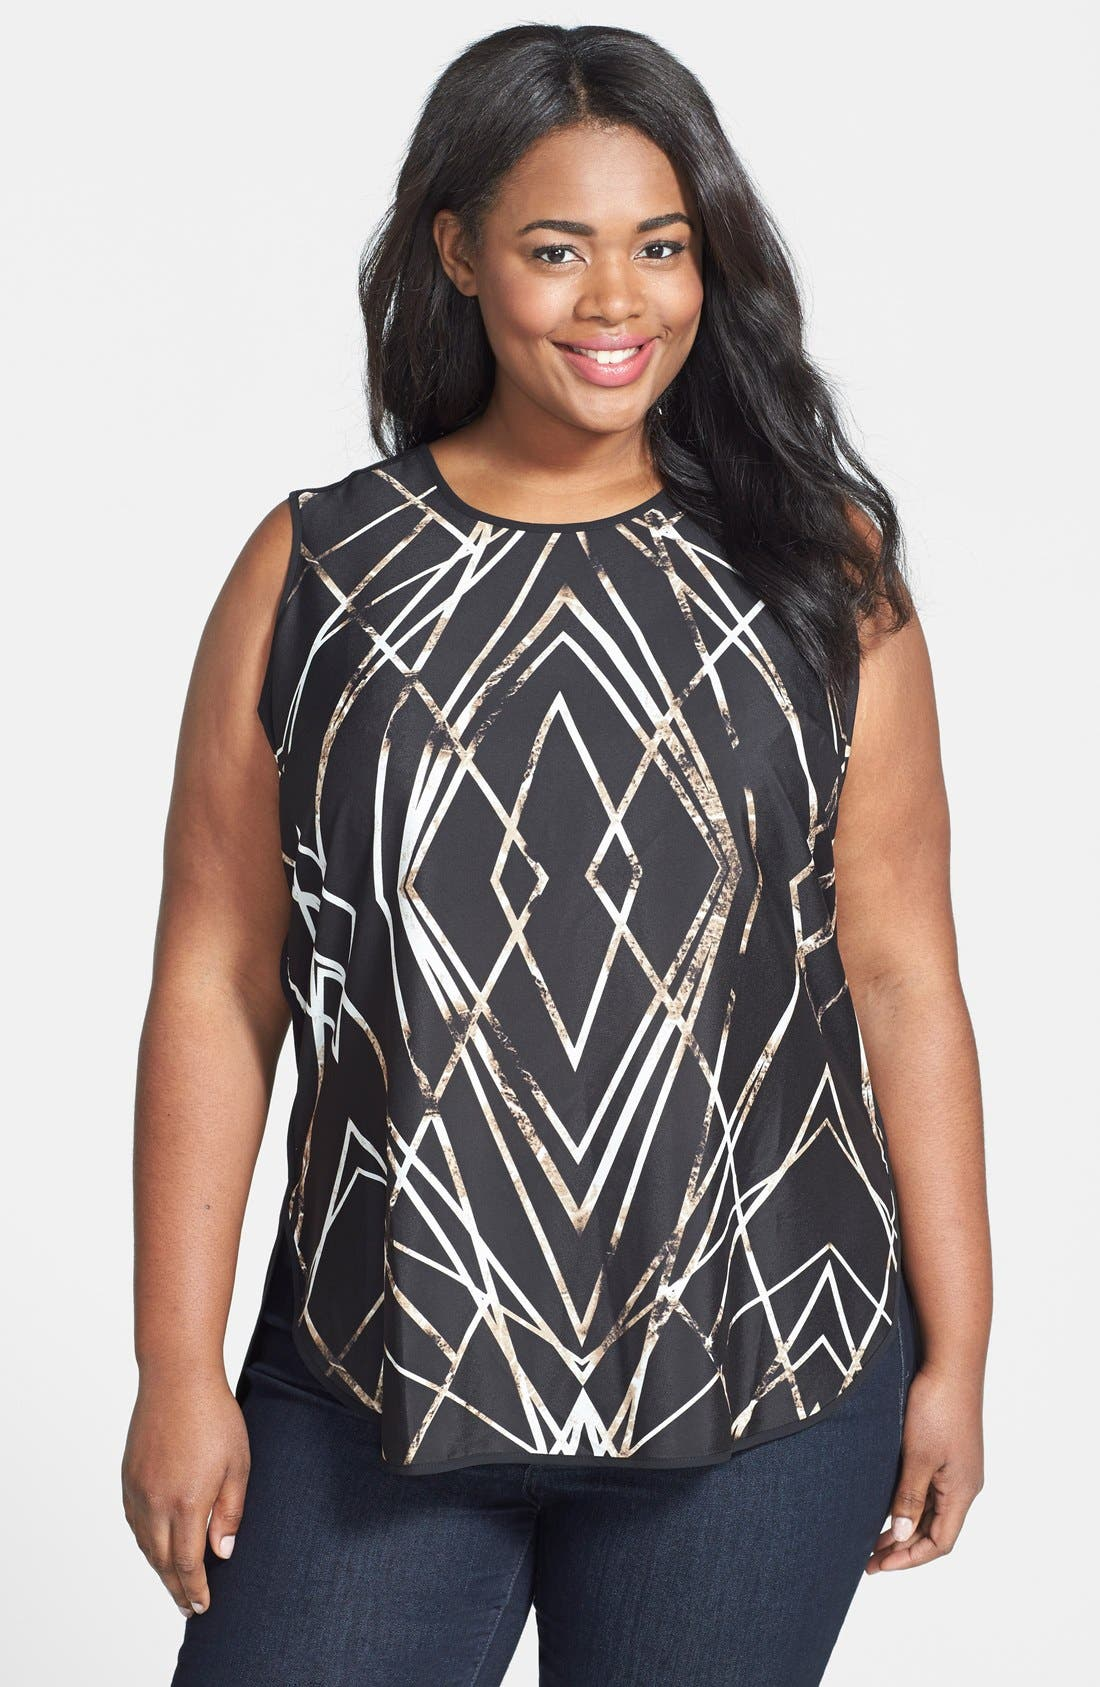 Alternate Image 1 Selected - Vince Camuto 'Modern Web' Sleeveless Top (Plus Size)